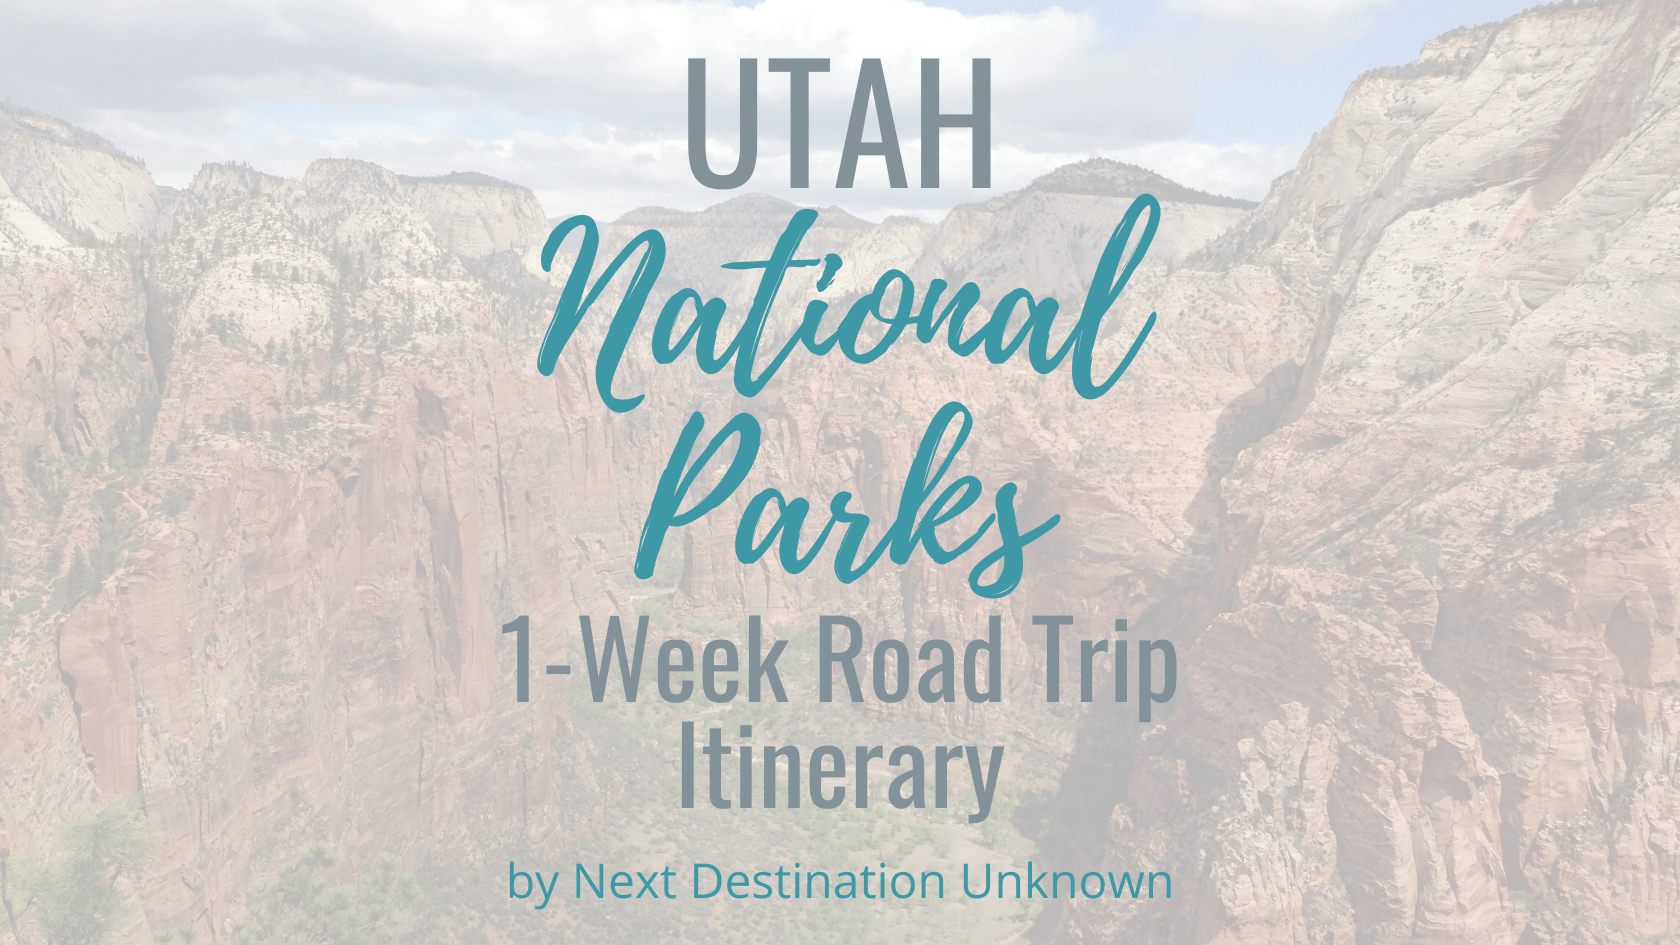 Utah National Parks: an Epic One Week Road Trip Itinerary